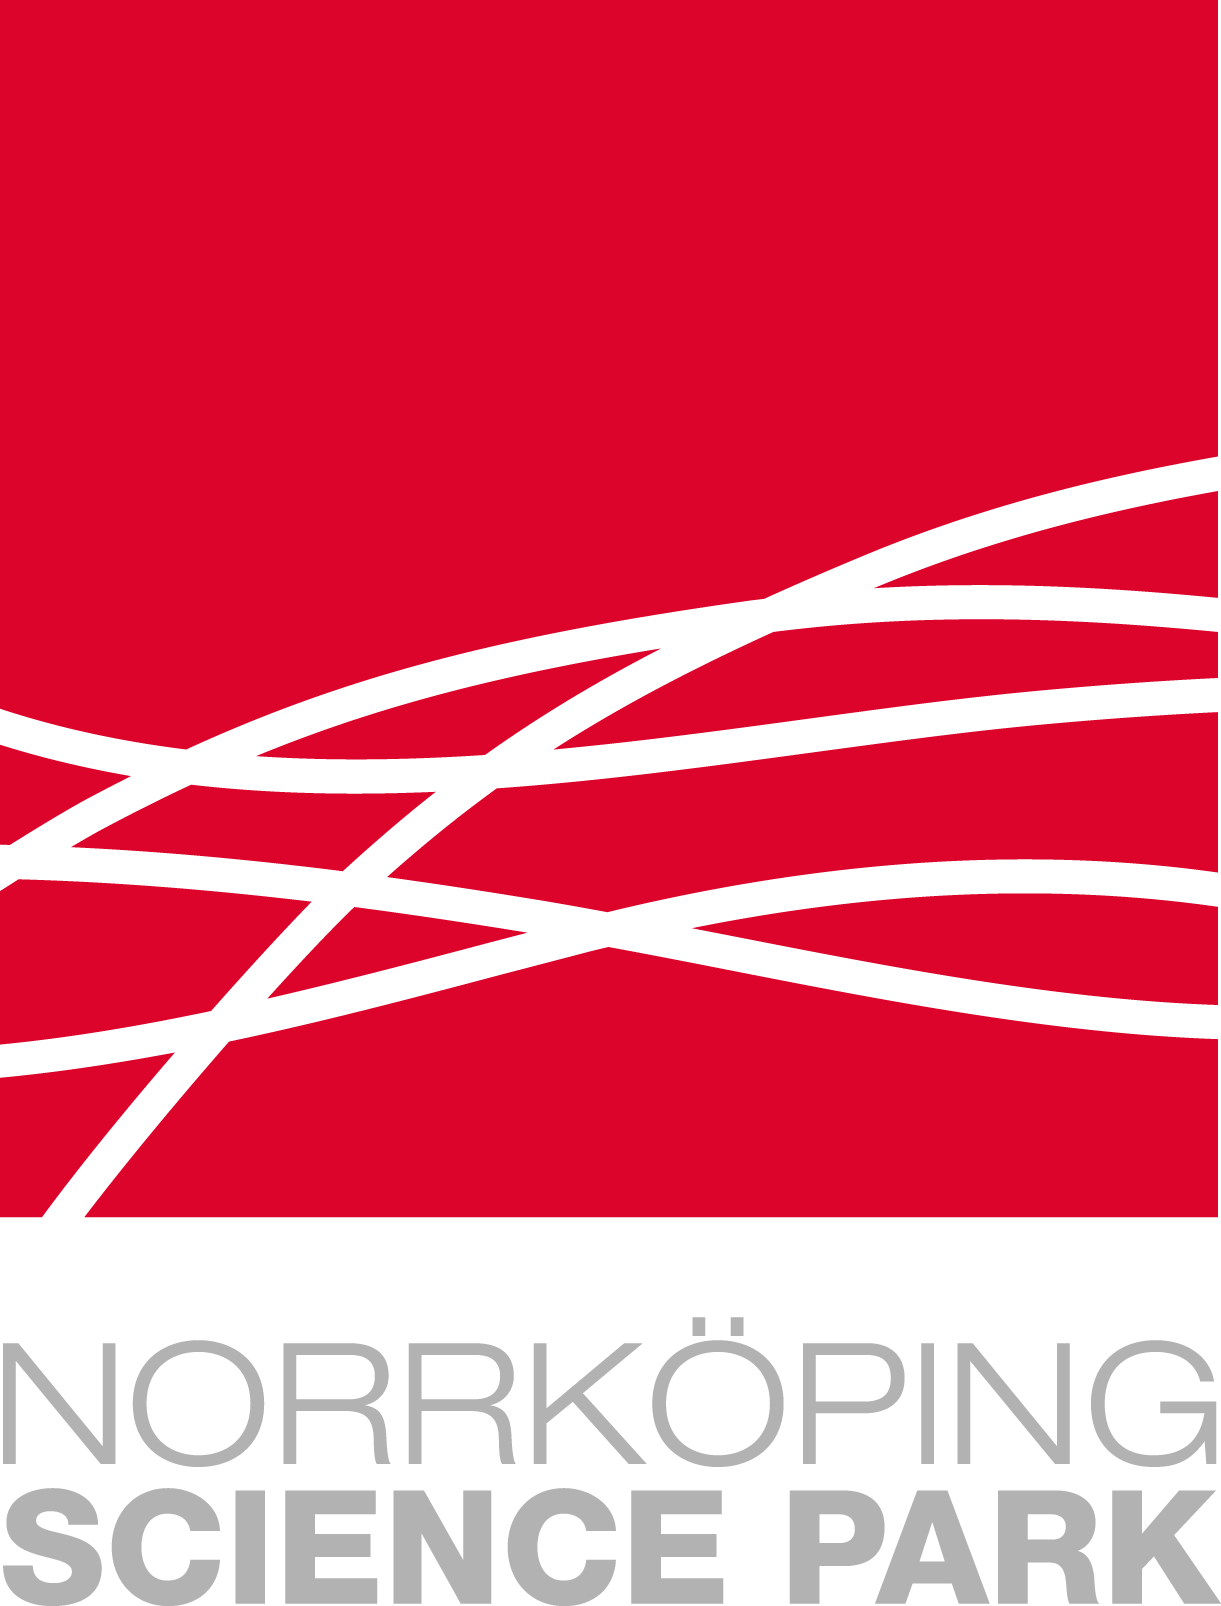 Norrköpings science park